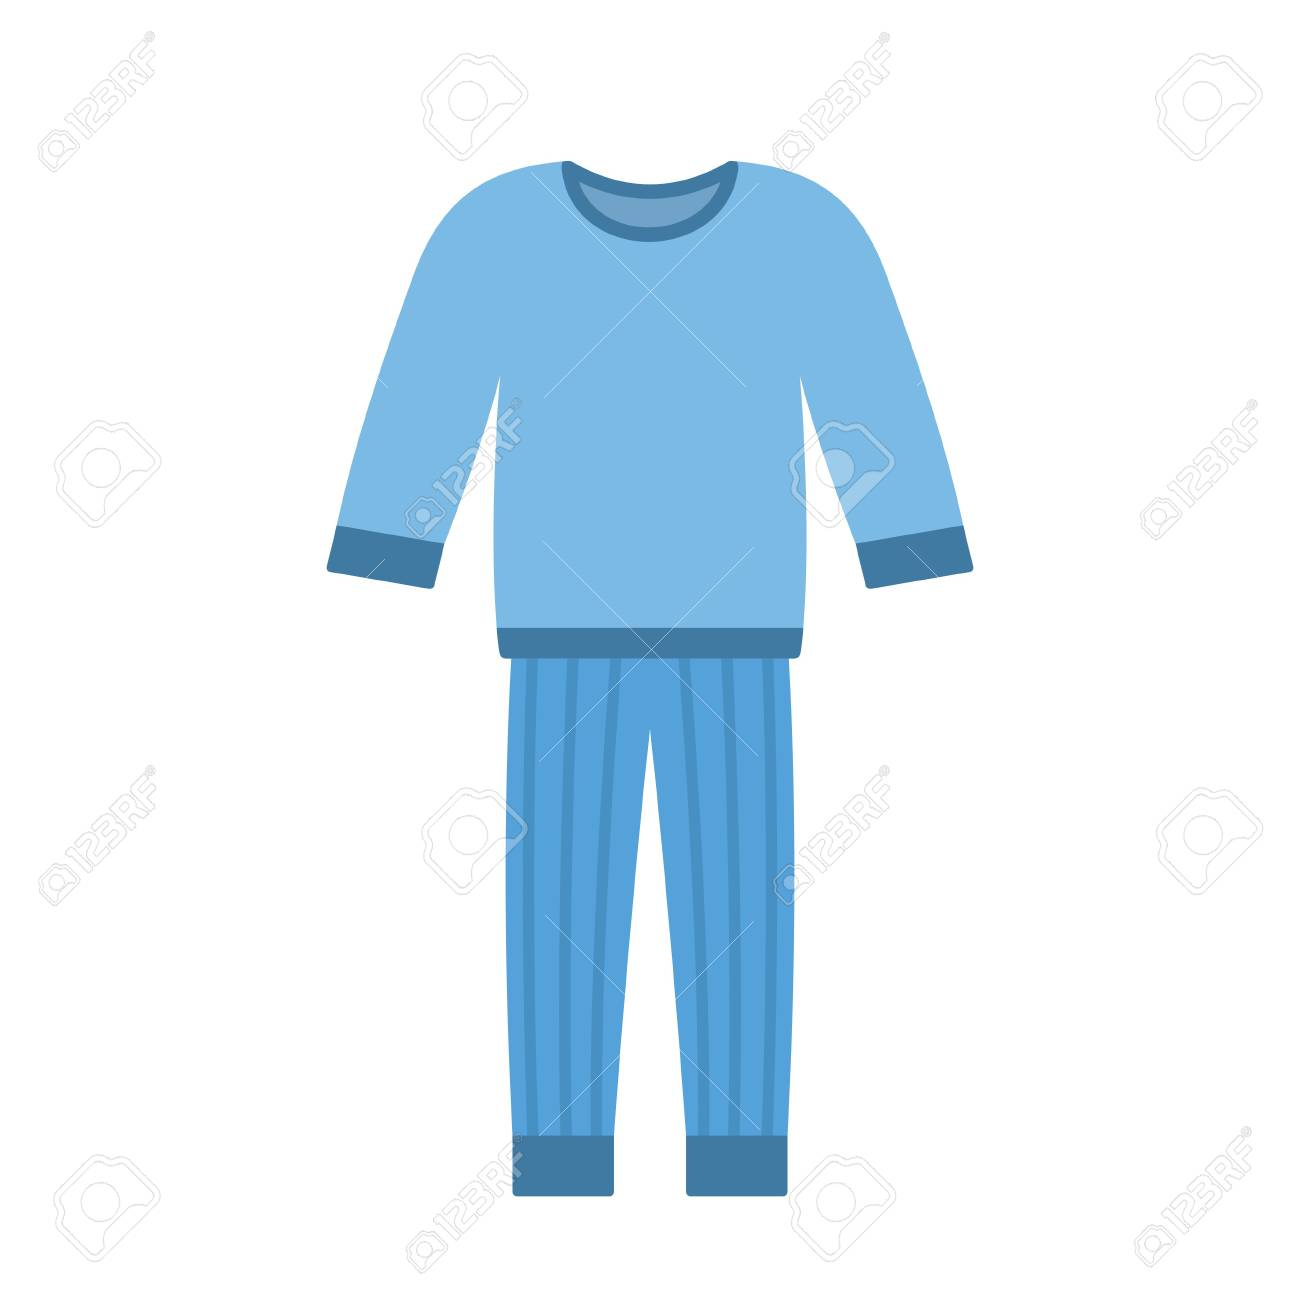 Comfort Blue Pajamas Isolated On White Background Vector Illustration Royalty Free Cliparts Vectors And Stock Illustration Image 79416343